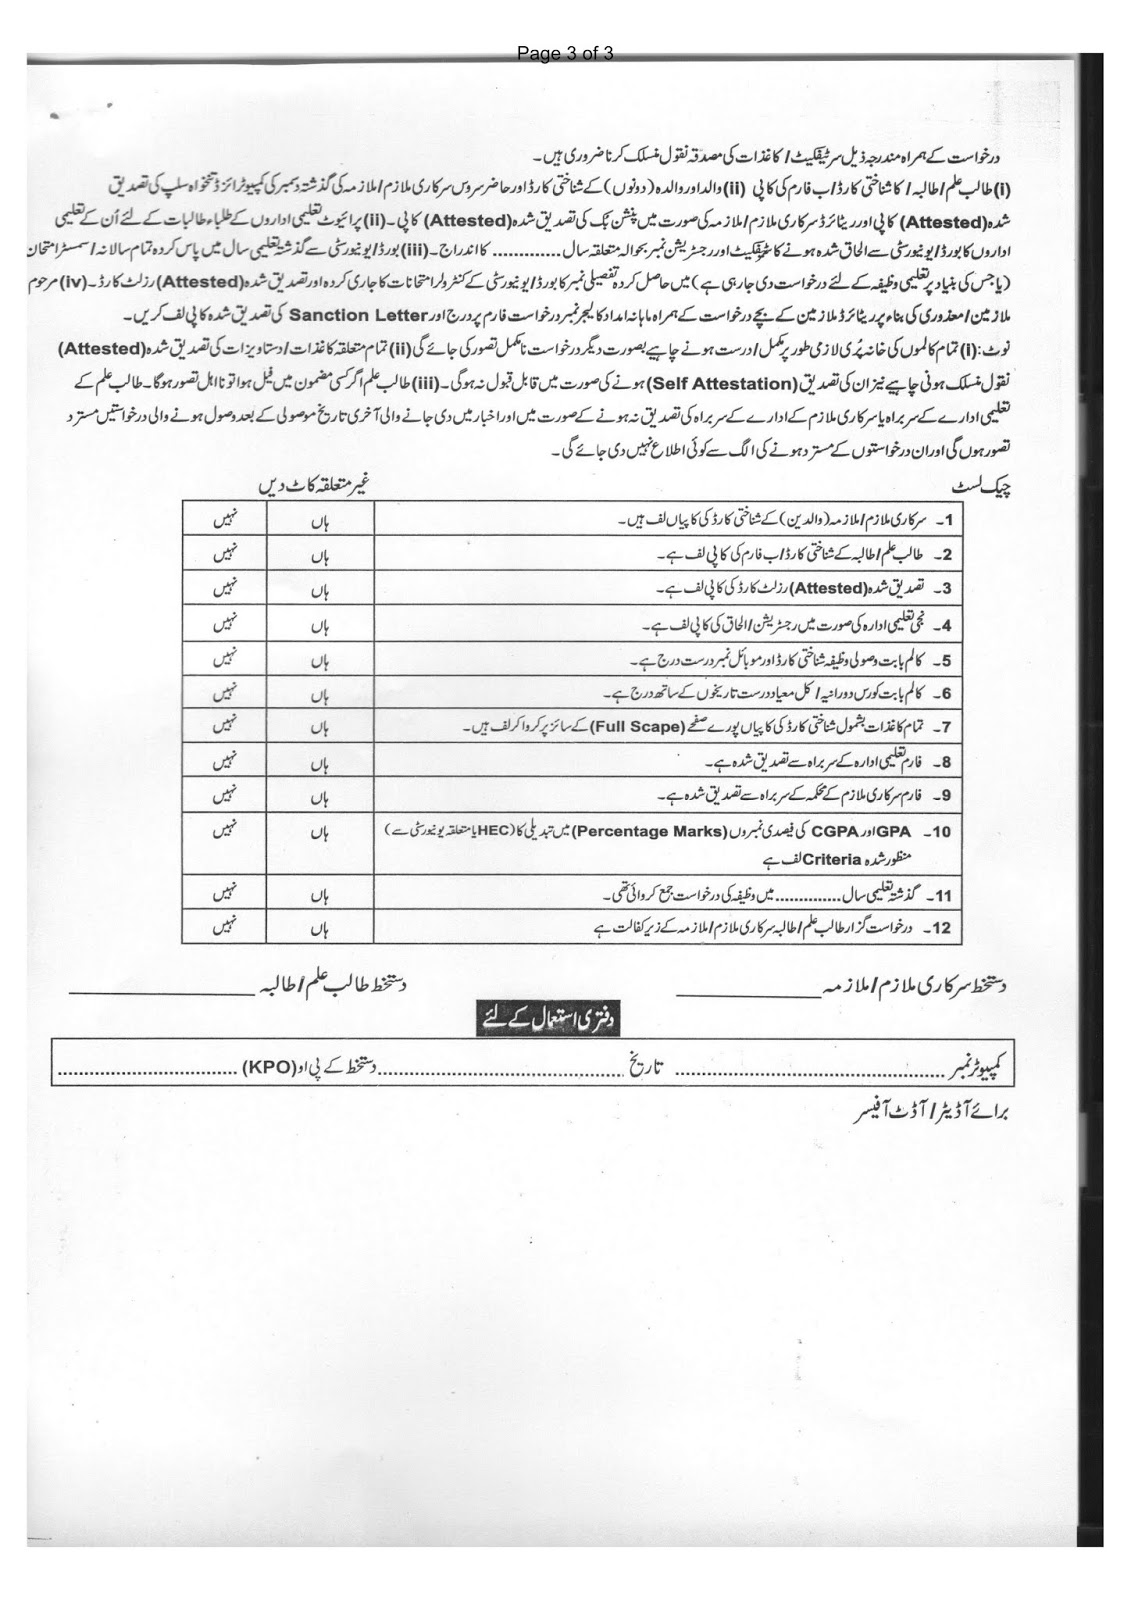 Download Benevolent form page 3